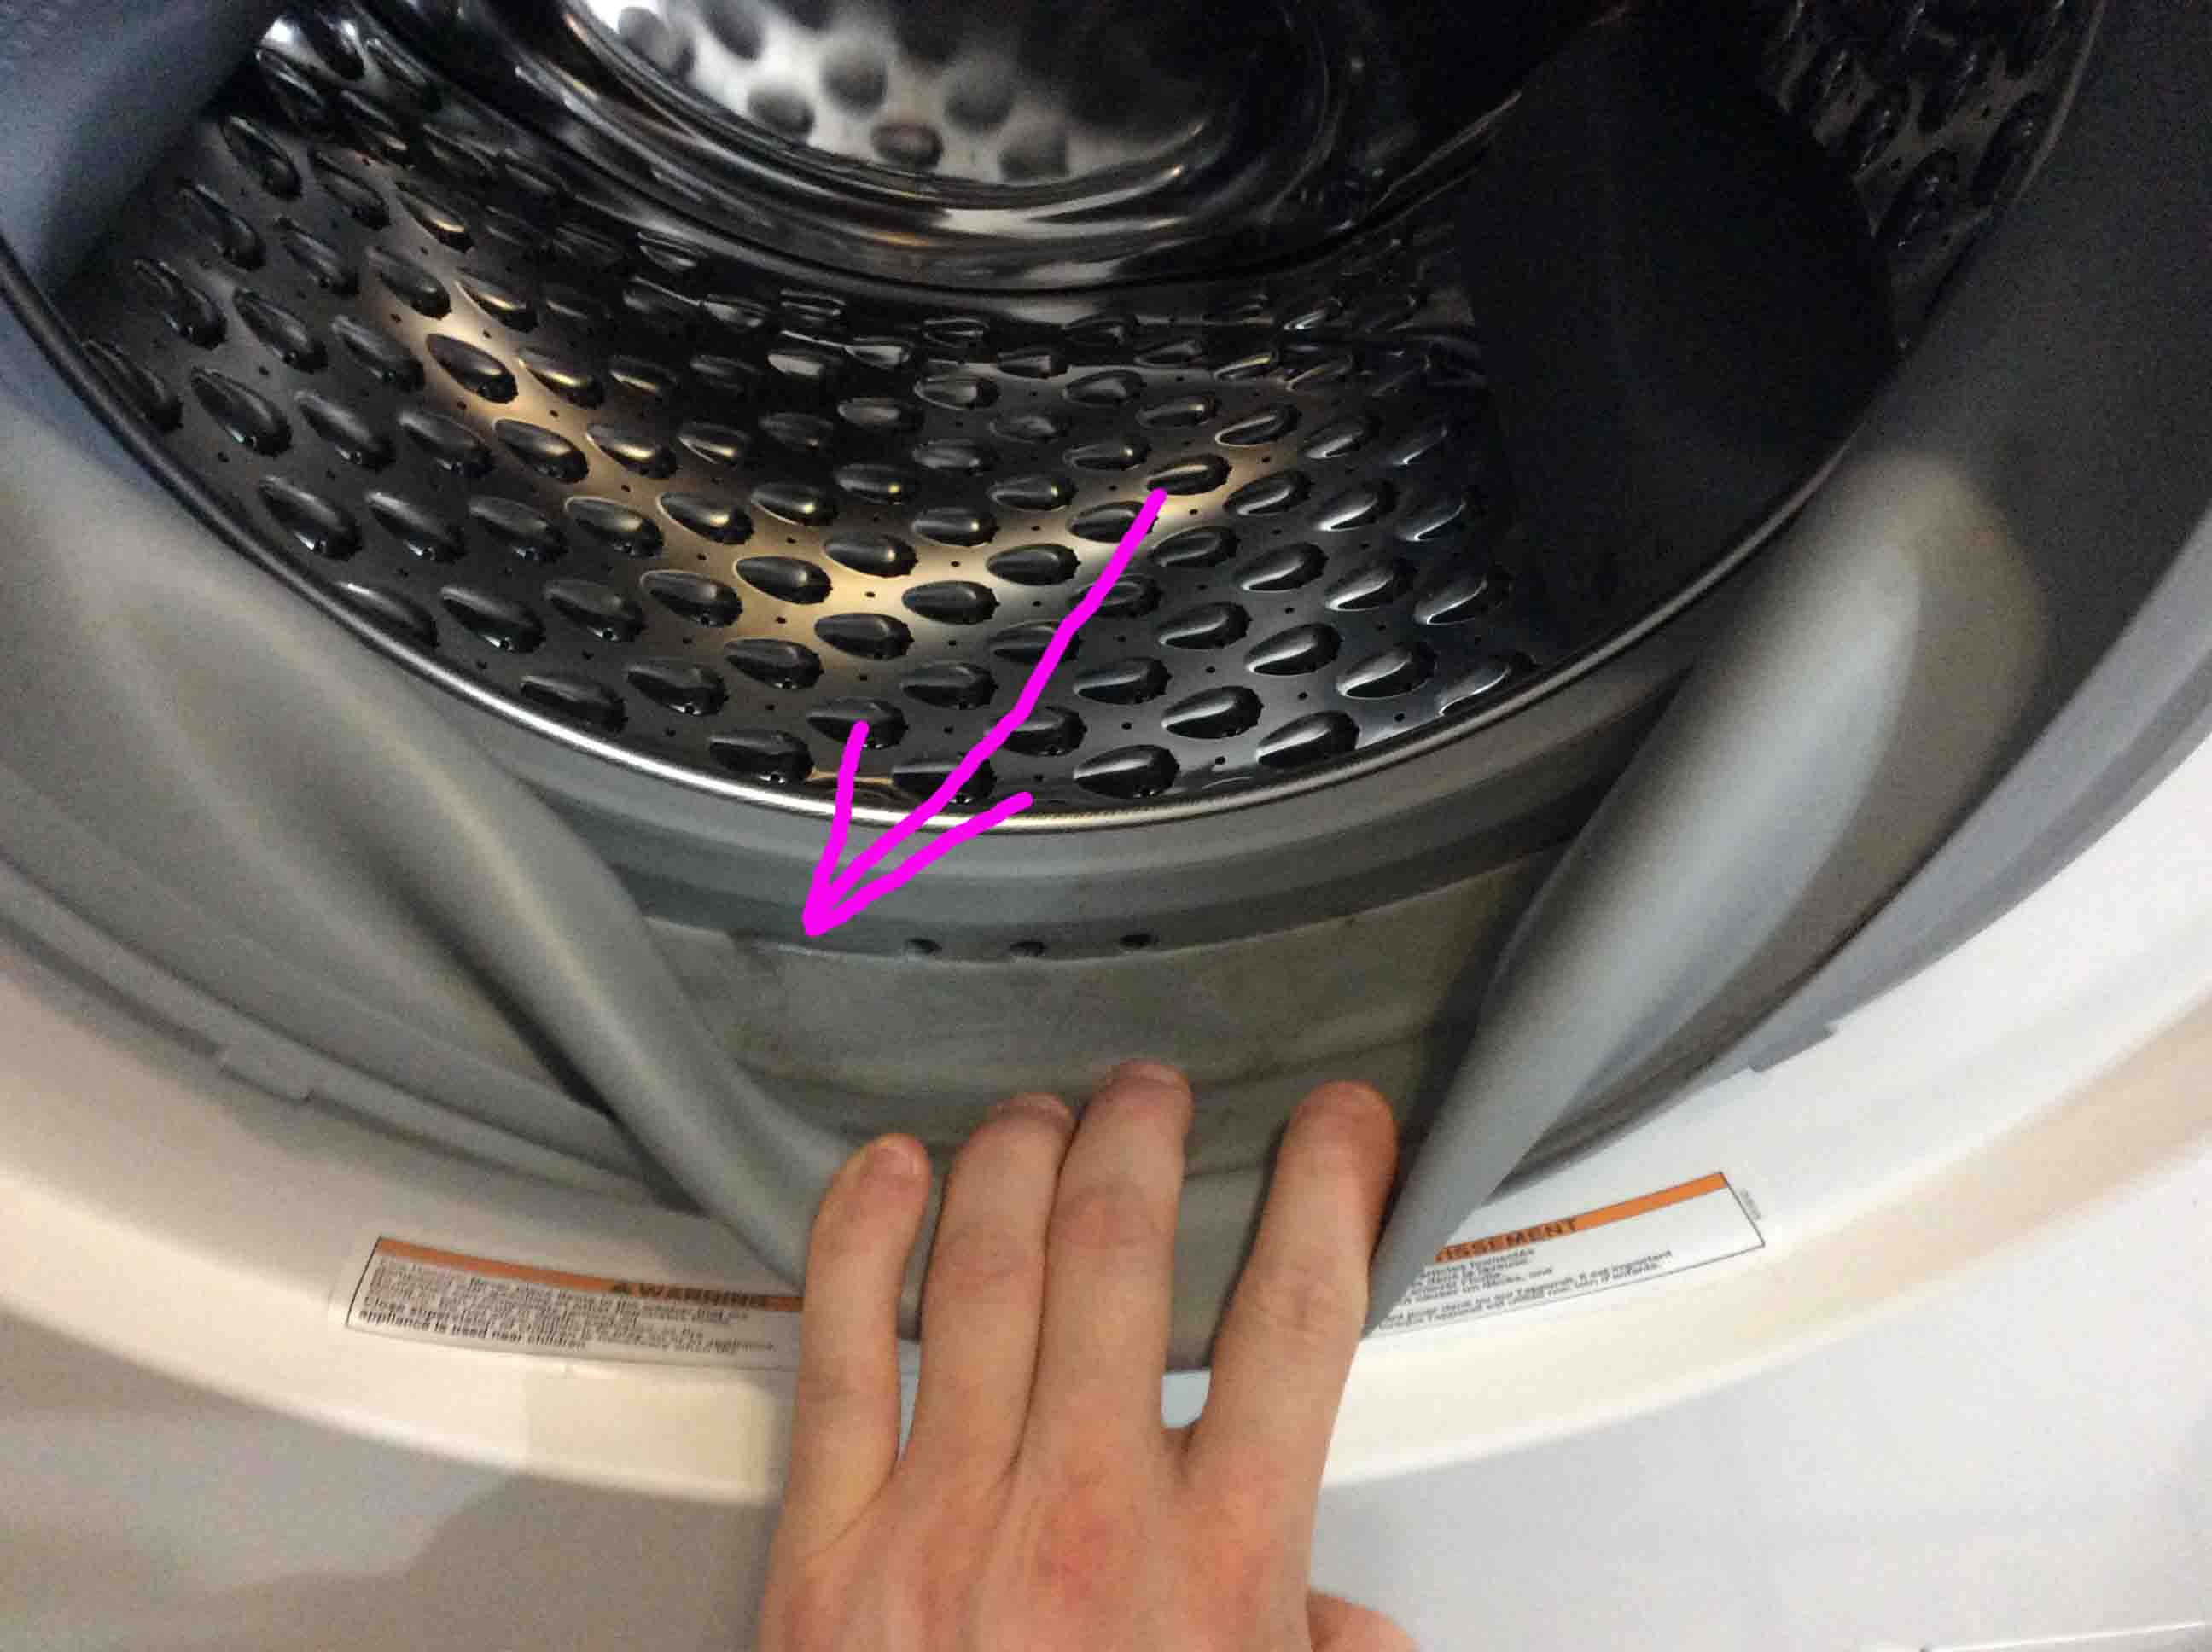 Charmant How To Clean Door Seal Gasket On Front Loader Washing Machine